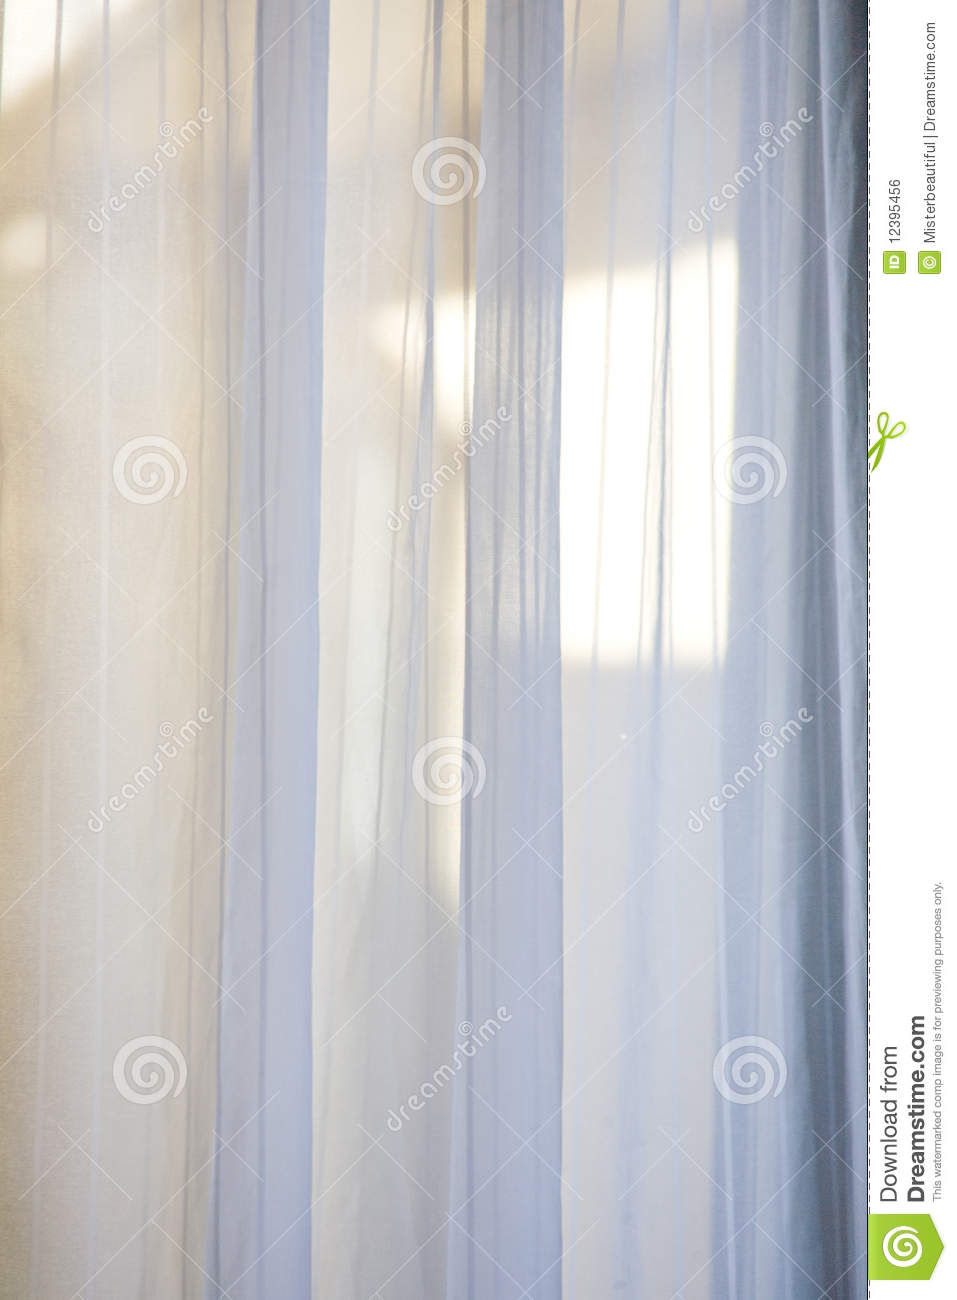 curtain texture royalty free stock image